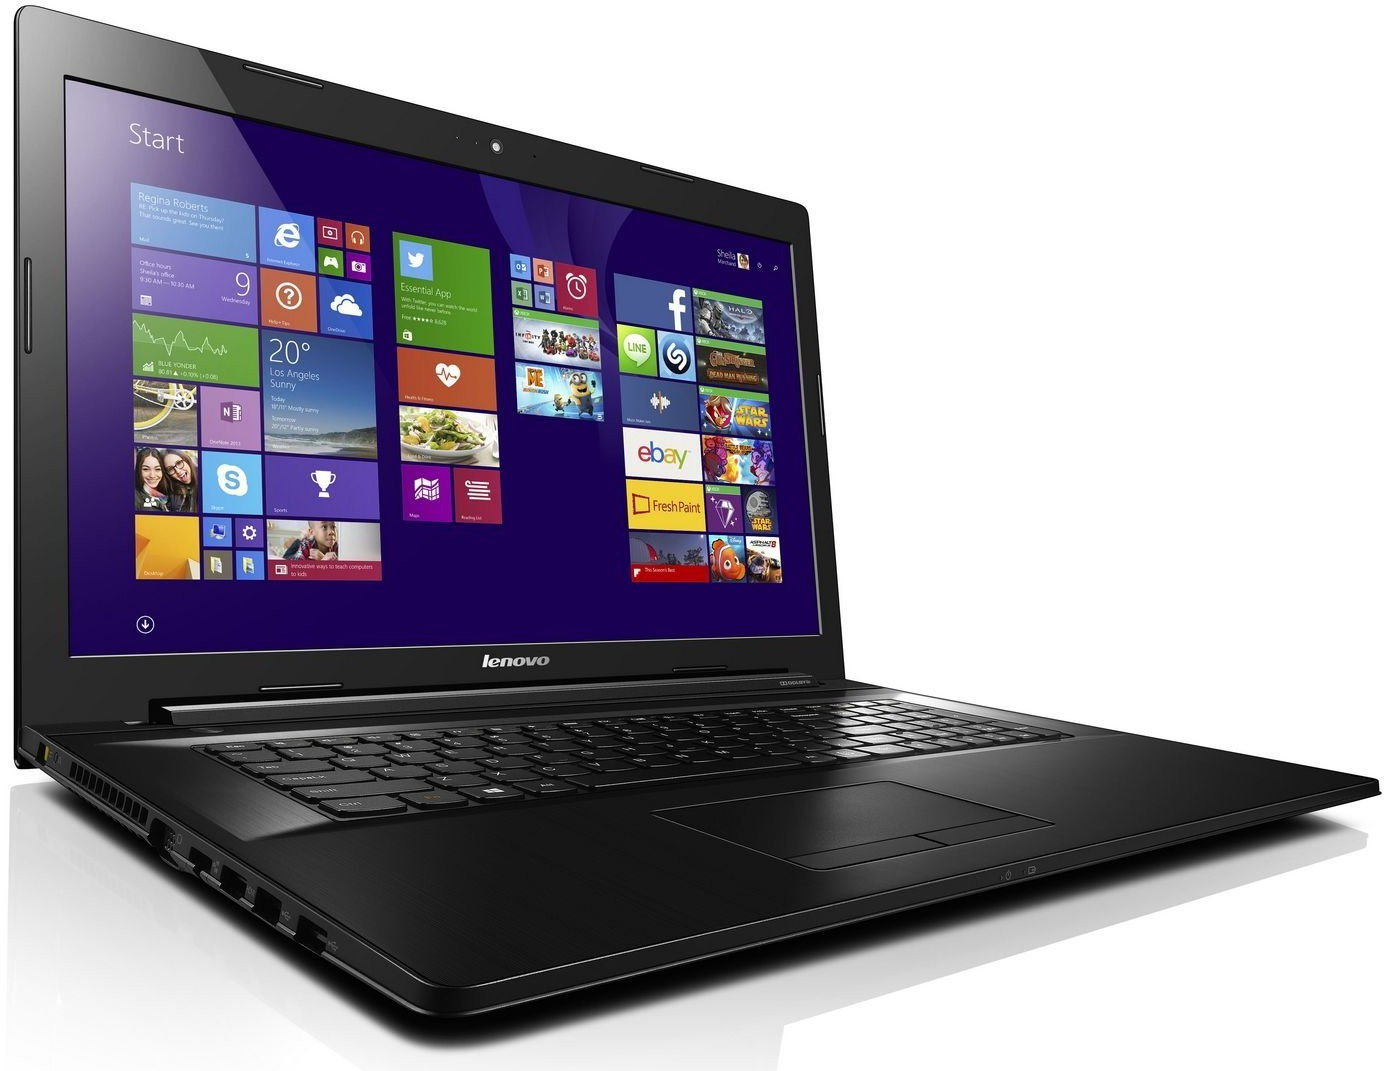 "Lenovo IdeaPad Z70-80 17,3"", Core i5 2,2GHz, 8GB RAM, 1000GB HDD + 8GB SSD (80FG0083PB)"